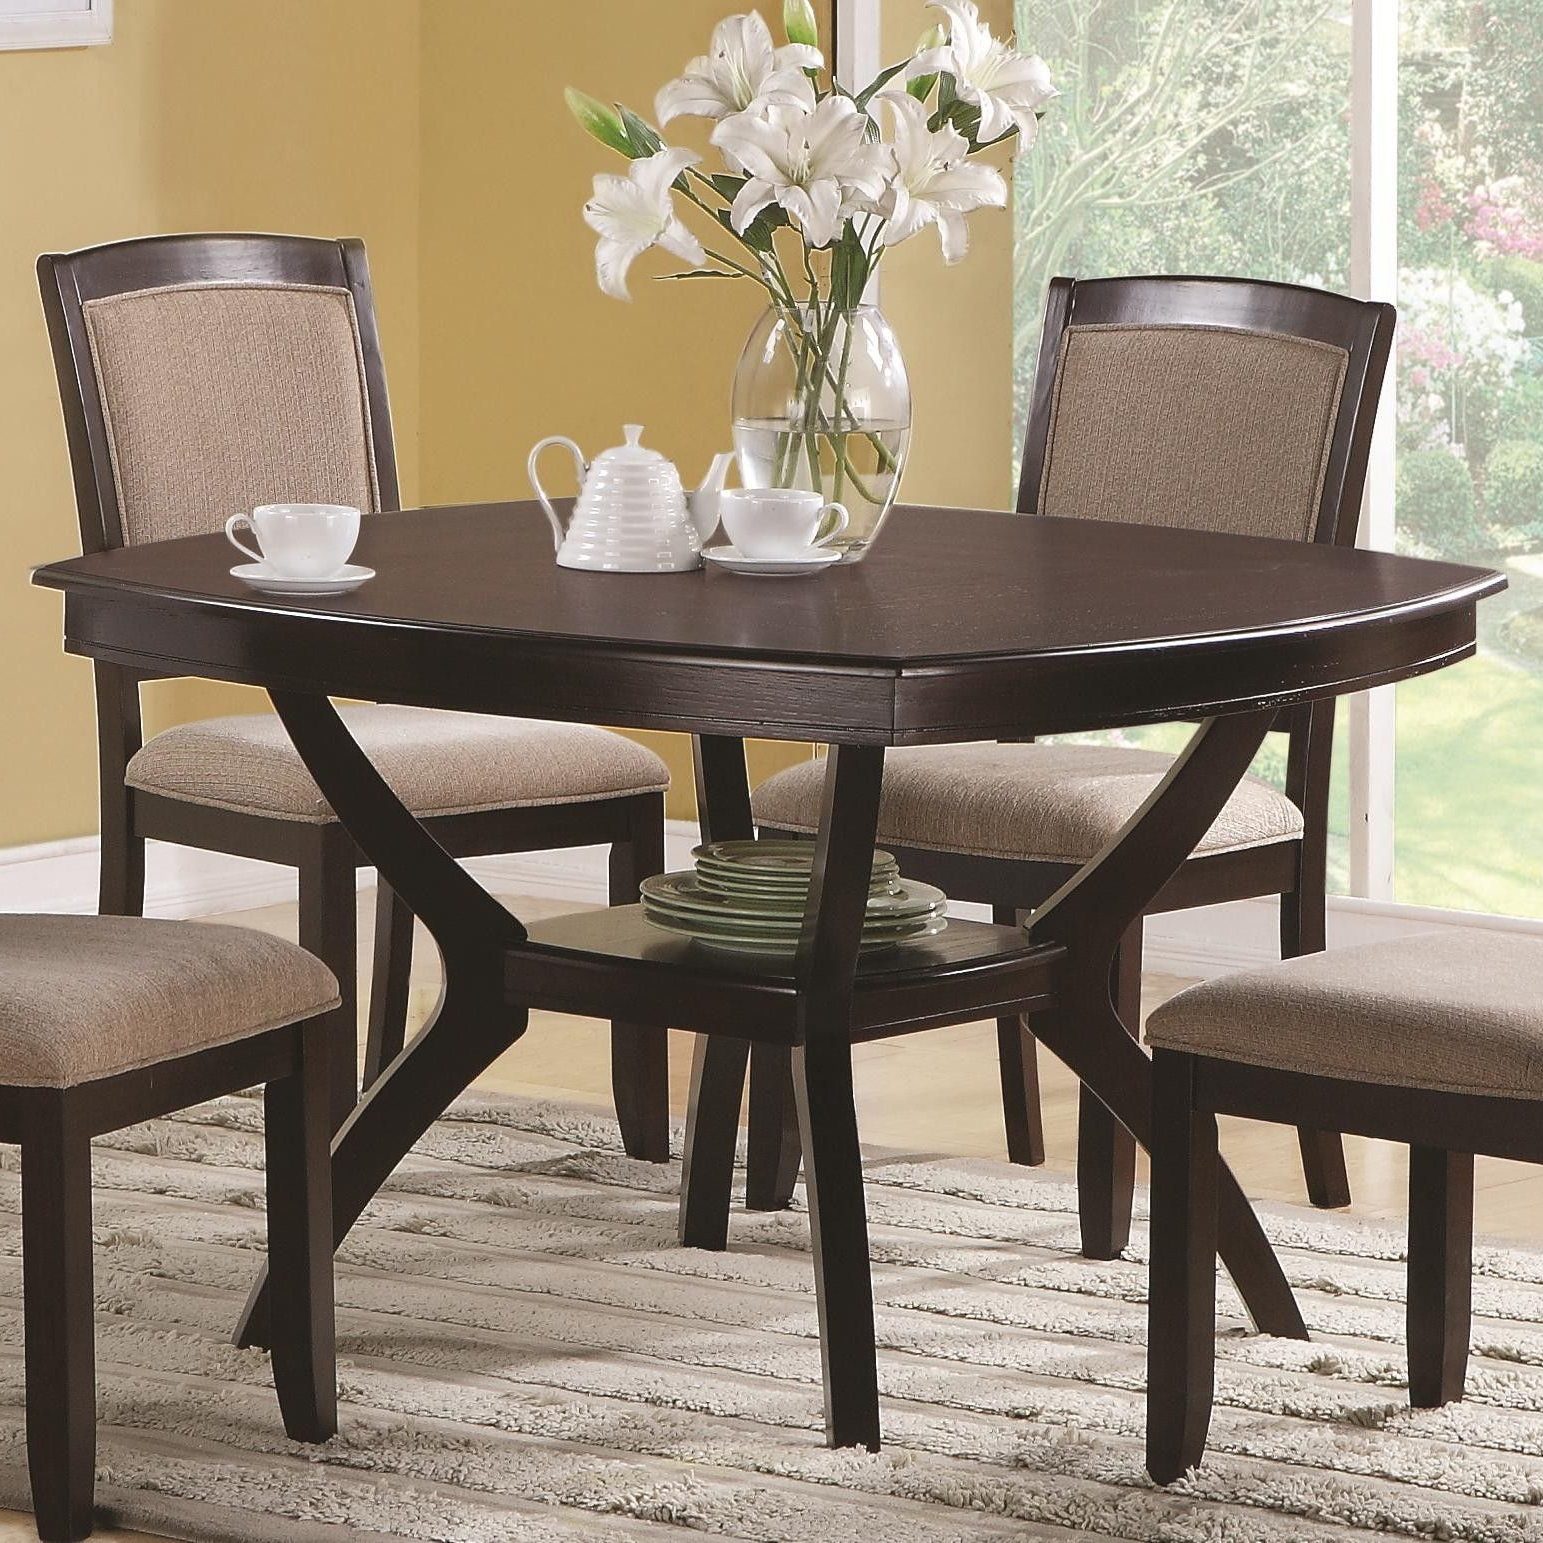 Casual Rounded Edge Square Dining Table Cappuccino Coaster Regarding Recent Atwood Transitional Square Dining Tables (View 15 of 30)